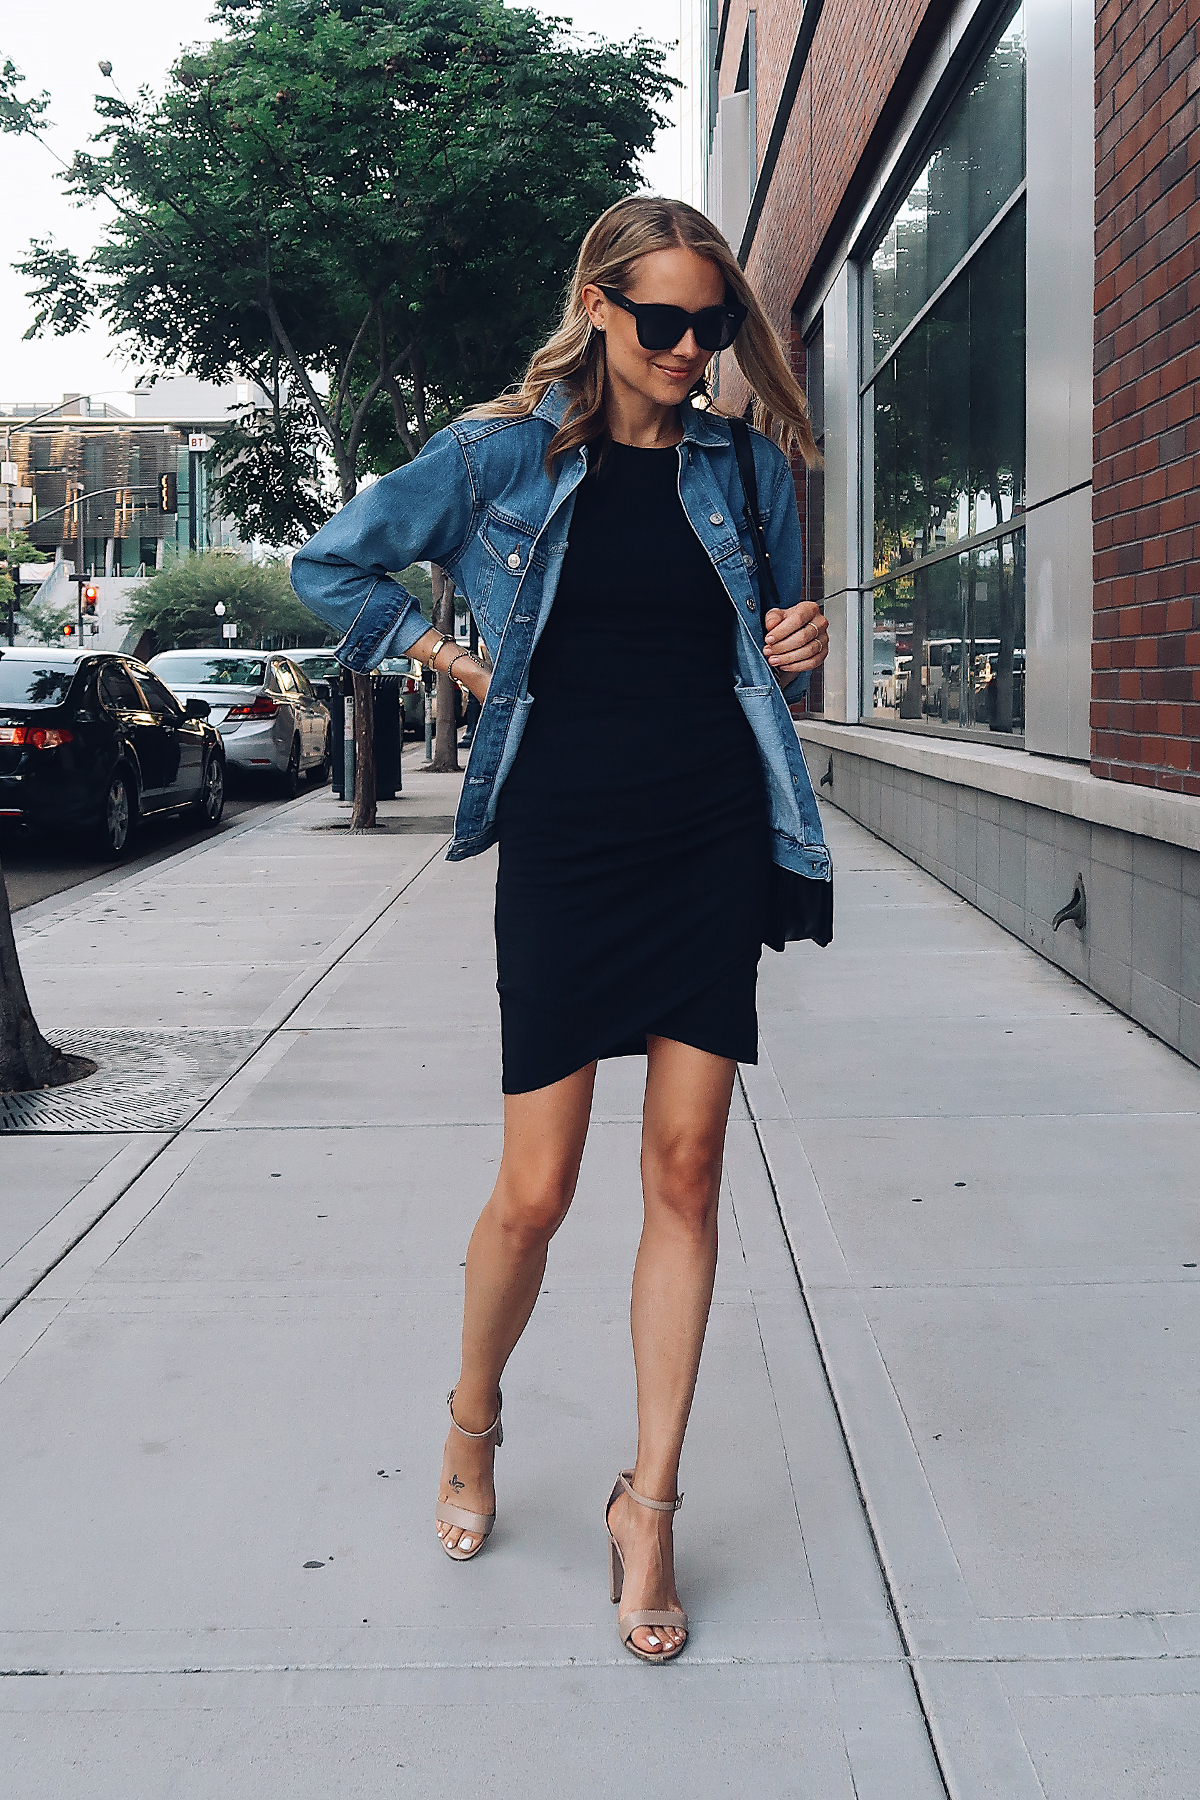 Blonde Woman Wearing Fashion Jackson Topshop Oversized Denim Jacket Black Wrap Dress Steve Madden Nude Ankle Strap Heeled Sandals Fashion Jackson San Diego Fashion Blogger Street Style